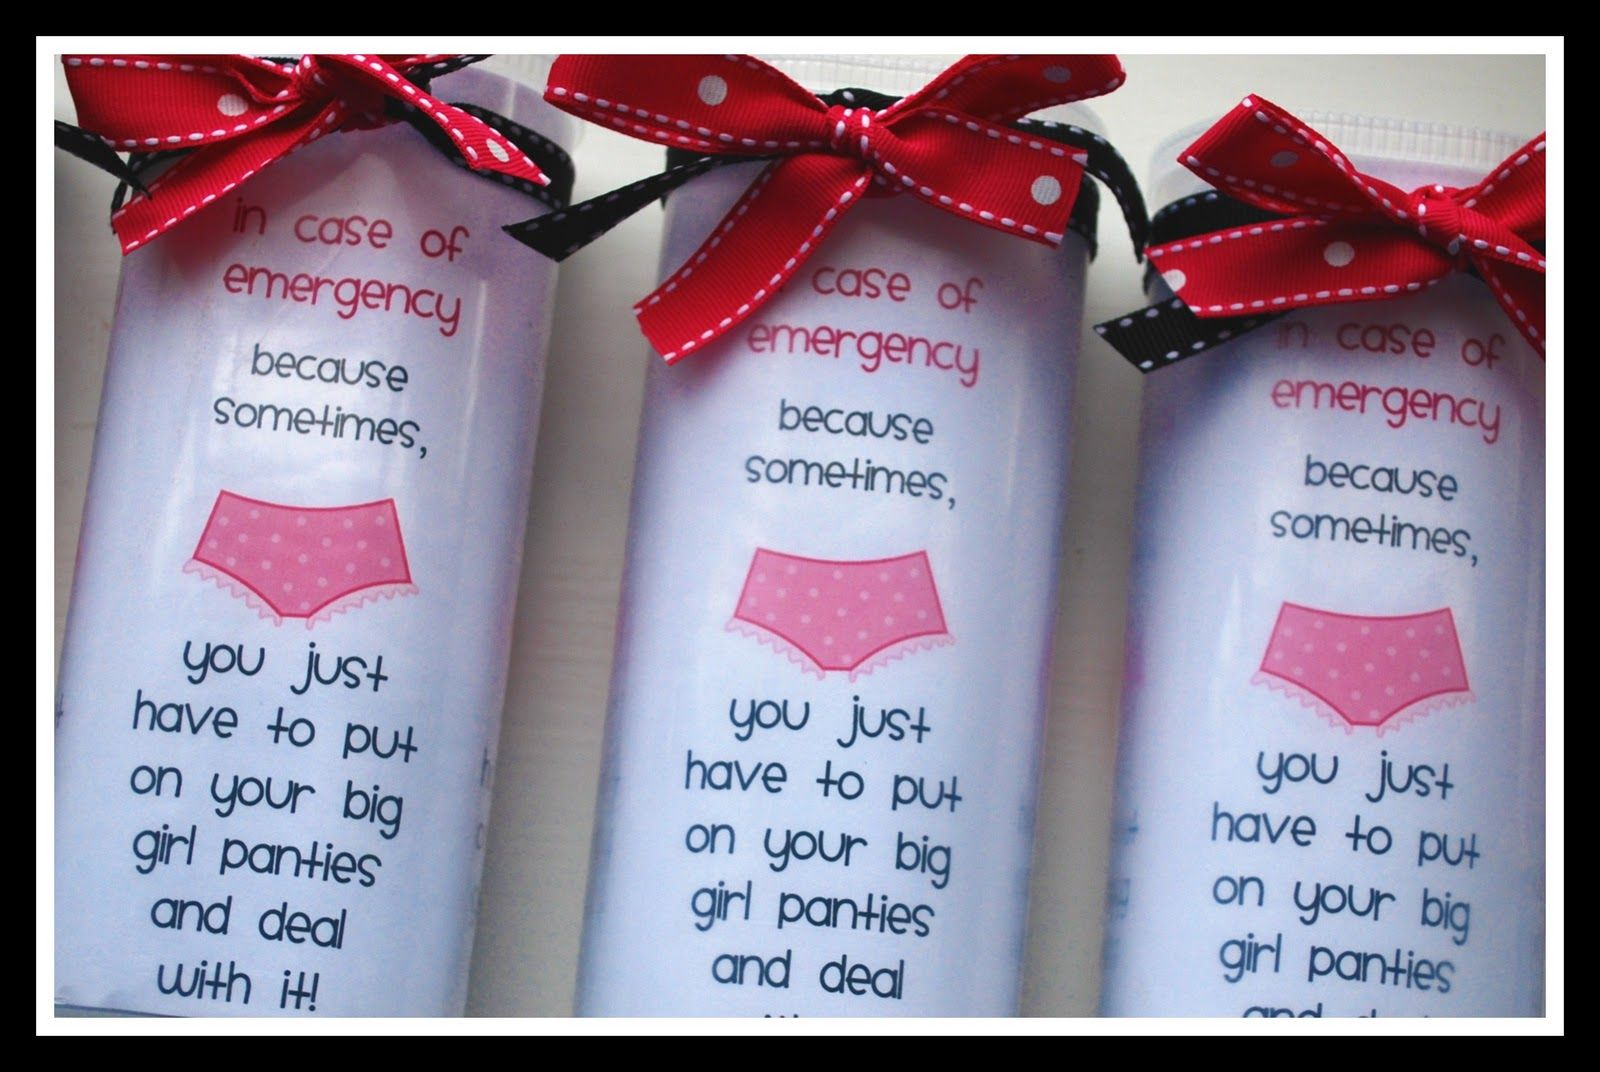 Cheri....your favorite saying! What an awesome crafty gag ...